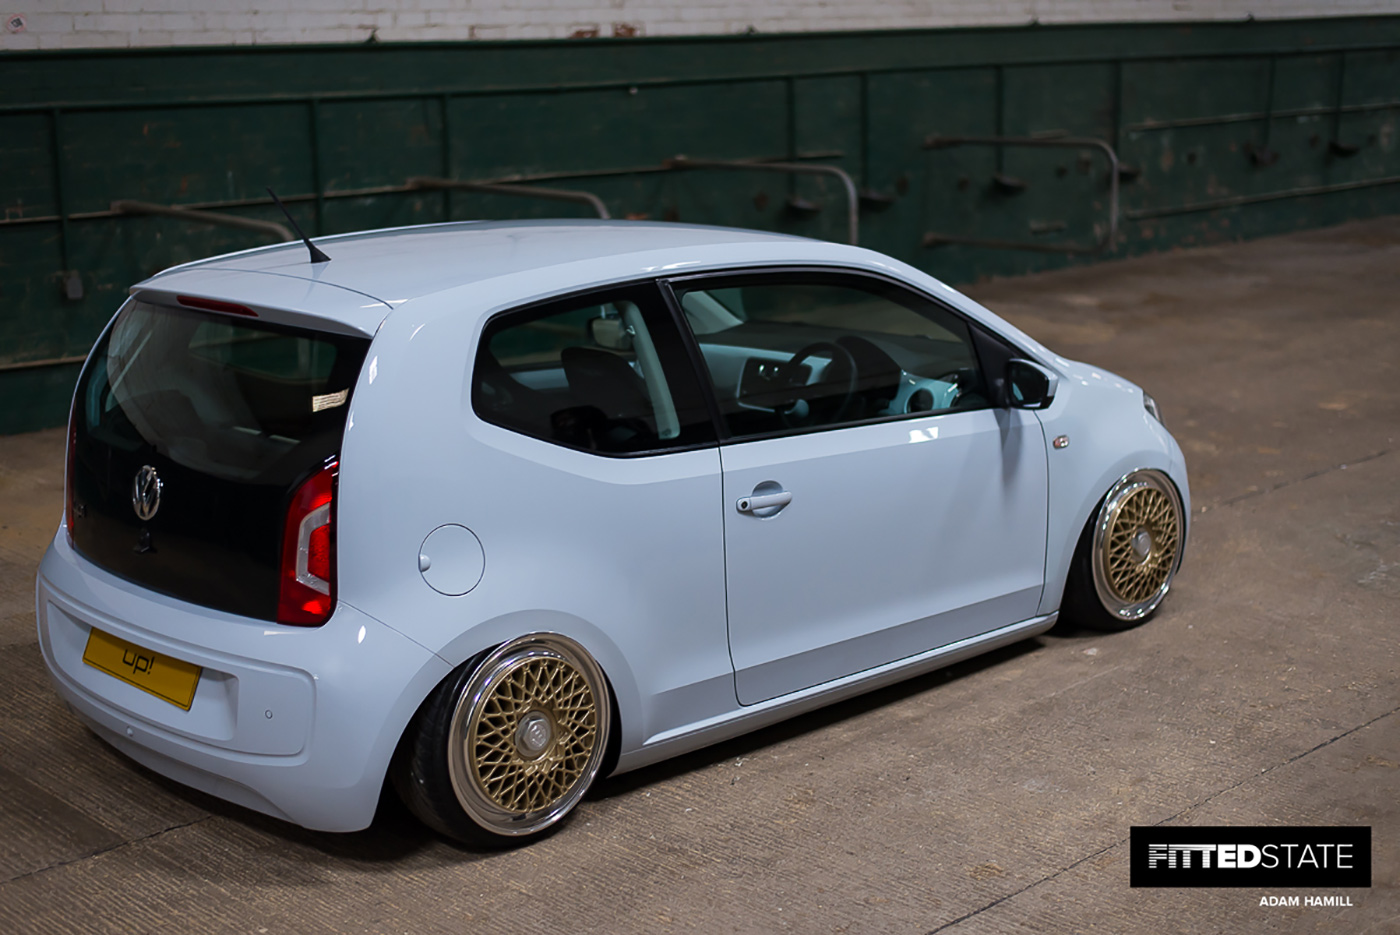 Adam Hamill's Volkswagen Up! - Fitted State